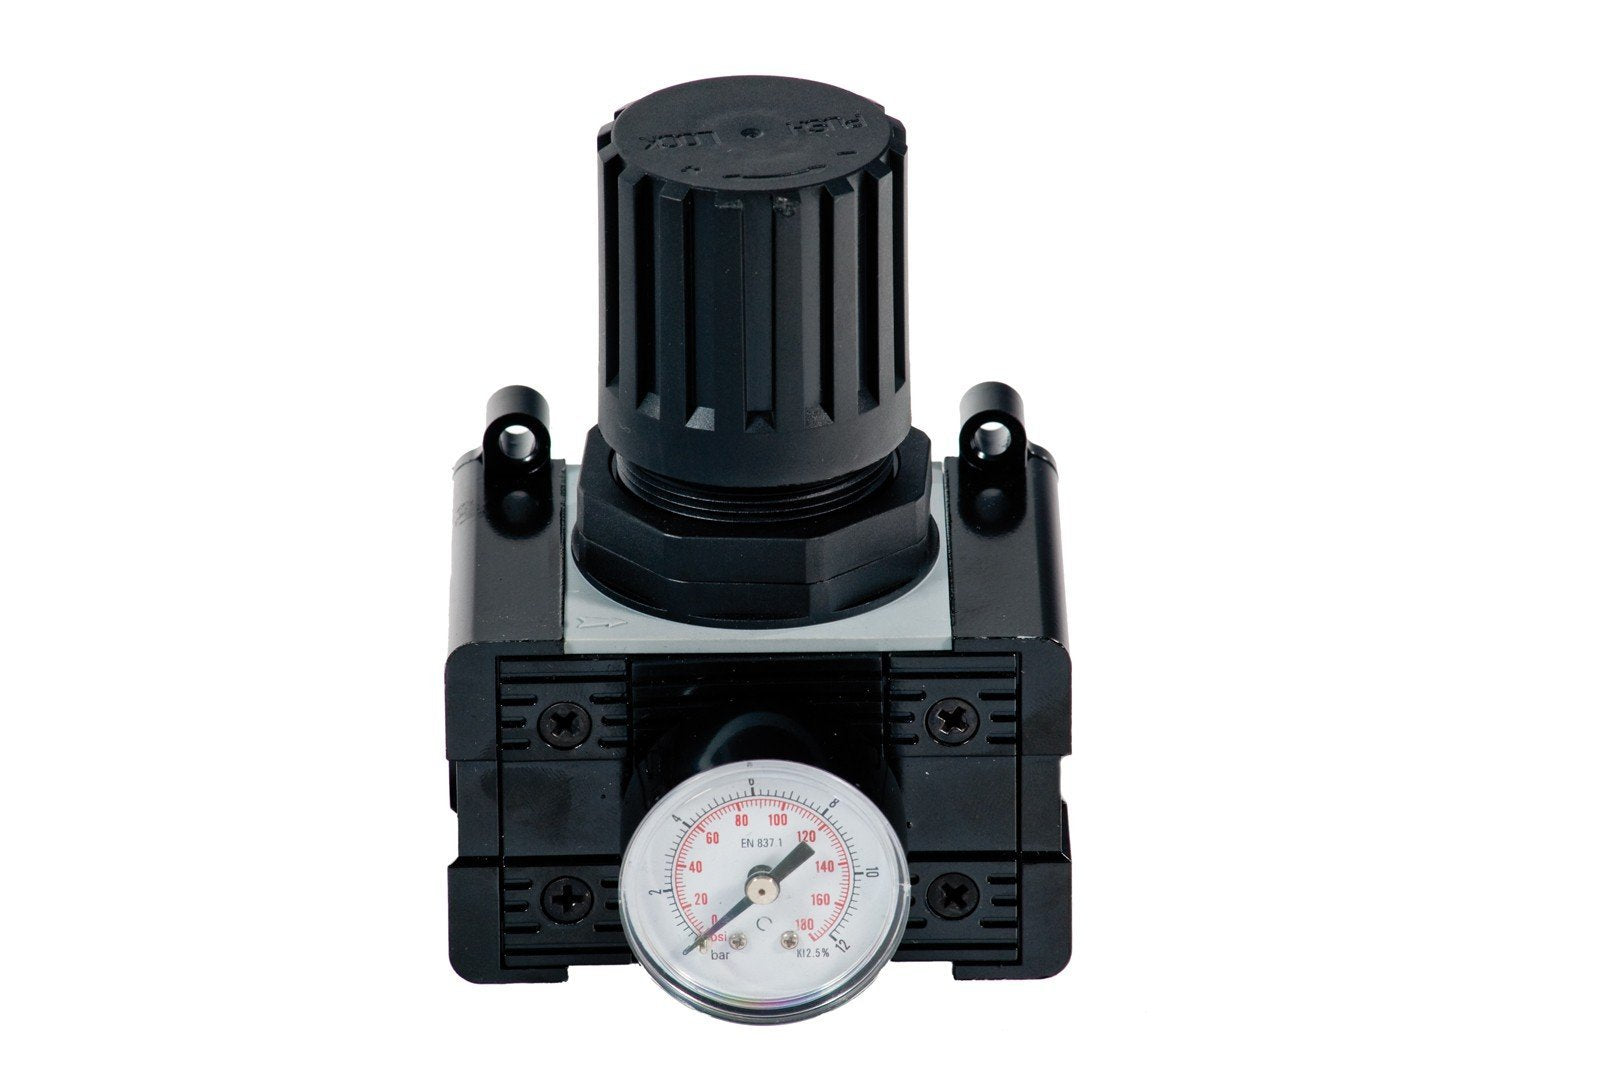 014-1045-B00 - Pressure regulator with gauge